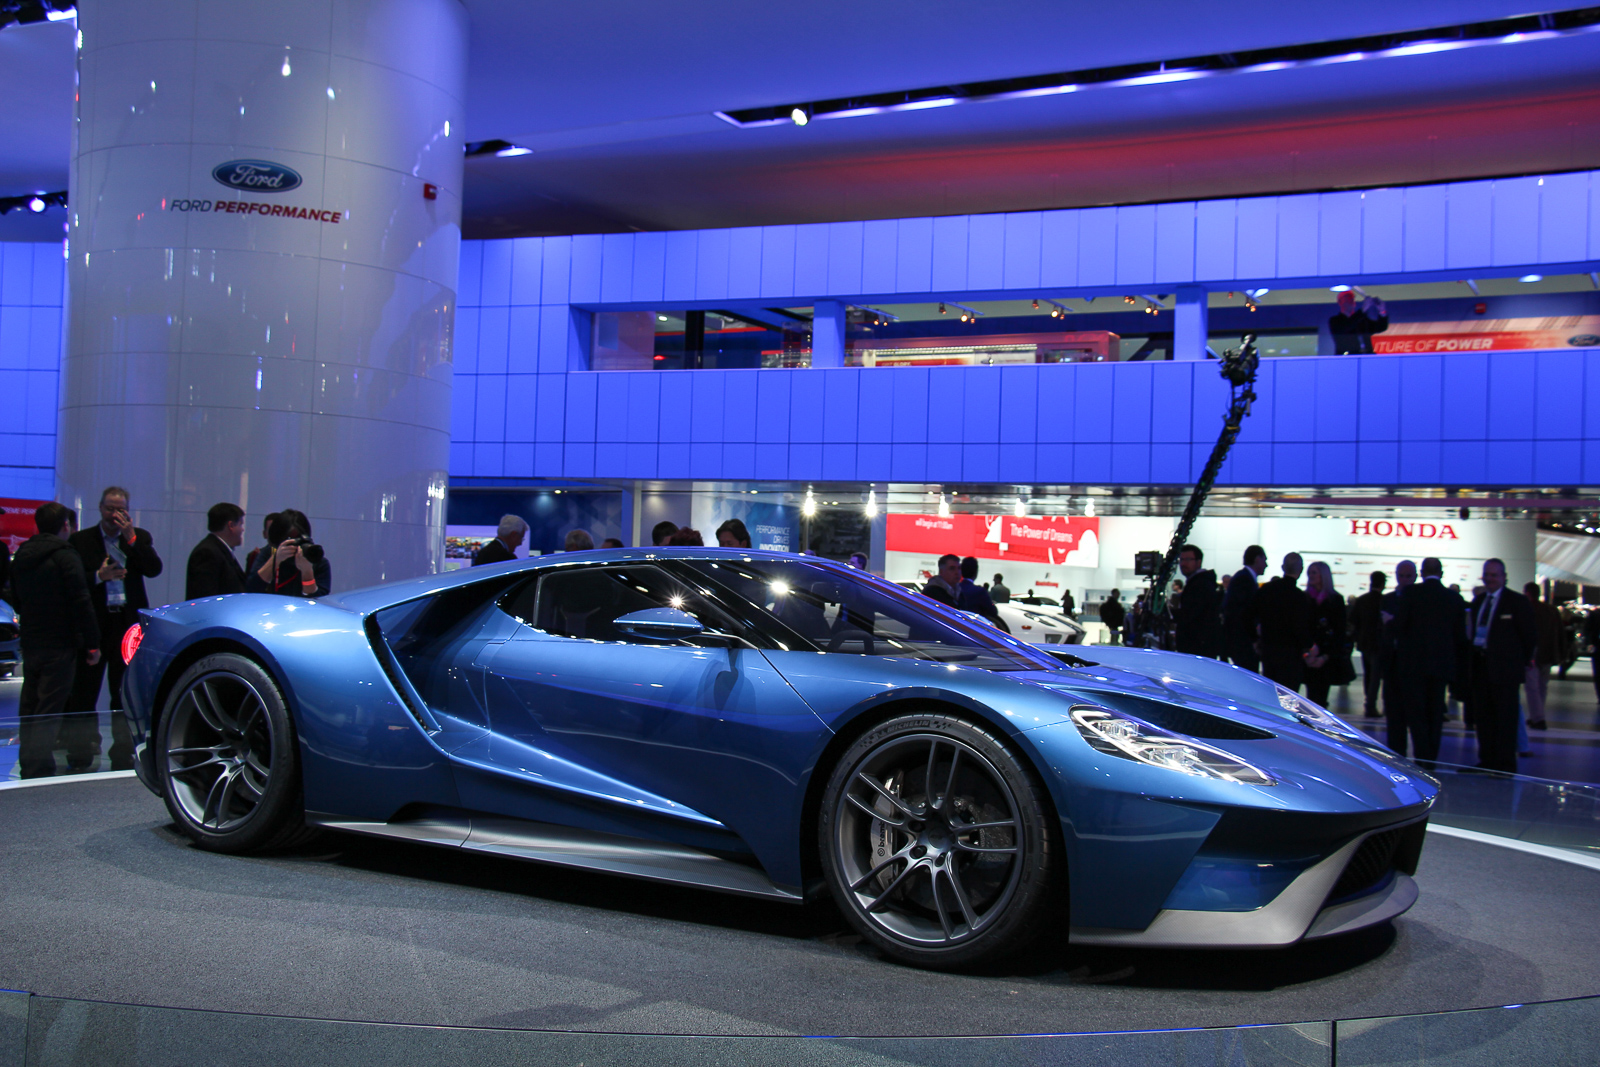 Ford-GT-2016-Concept-NAIAS-2015-Highlights-2